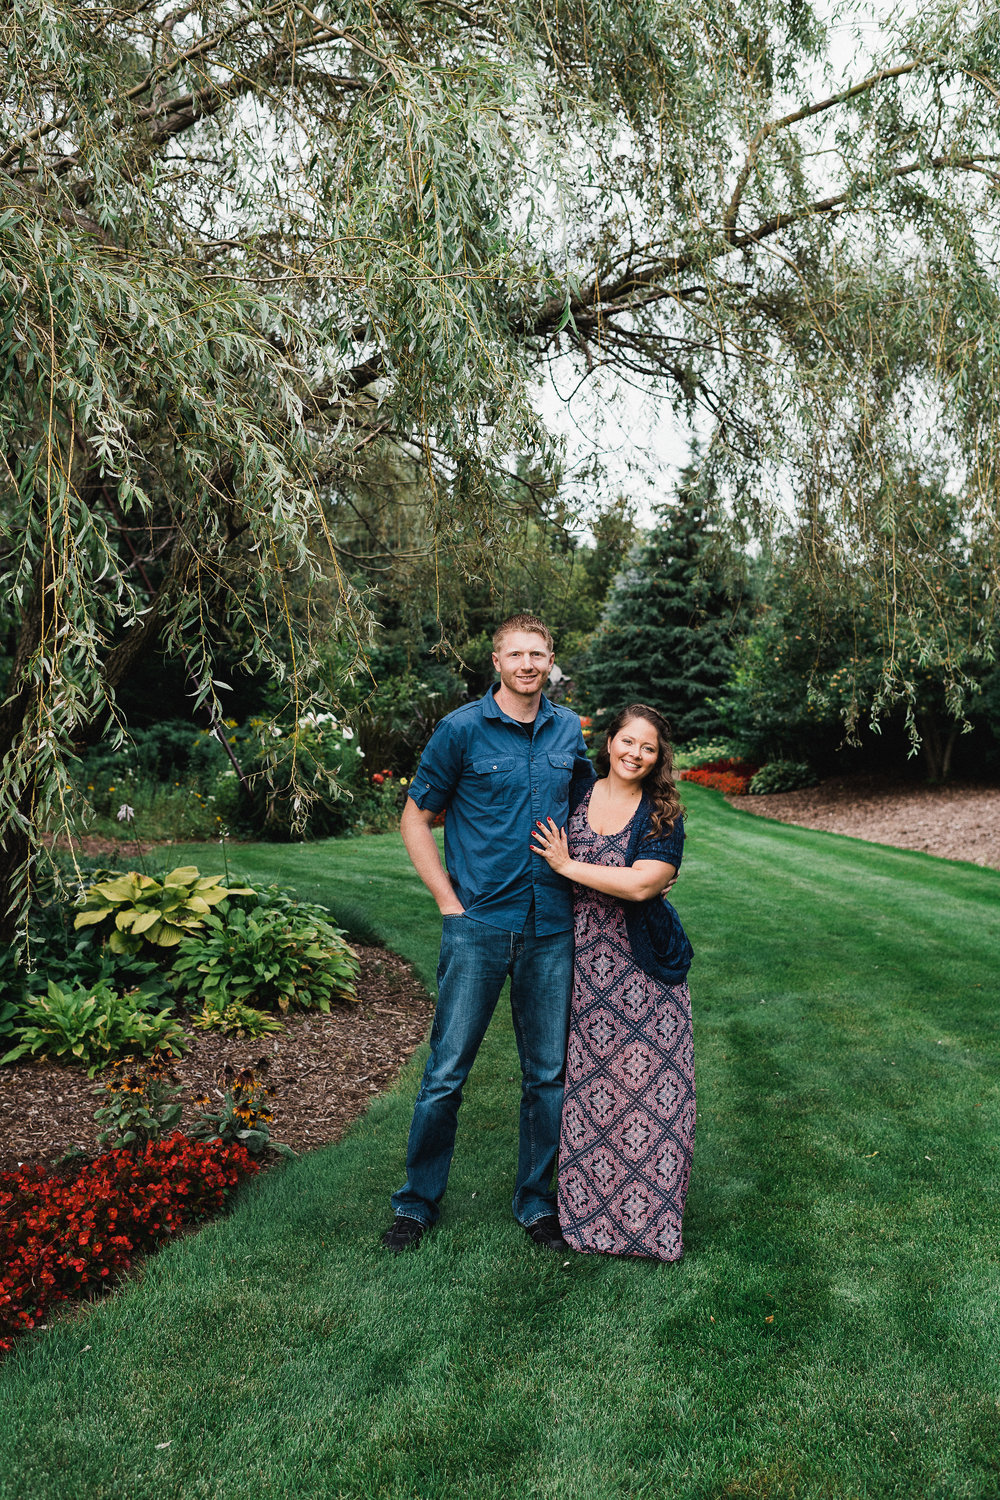 Engaged couple with arms around each other smiles while standing in a garden.